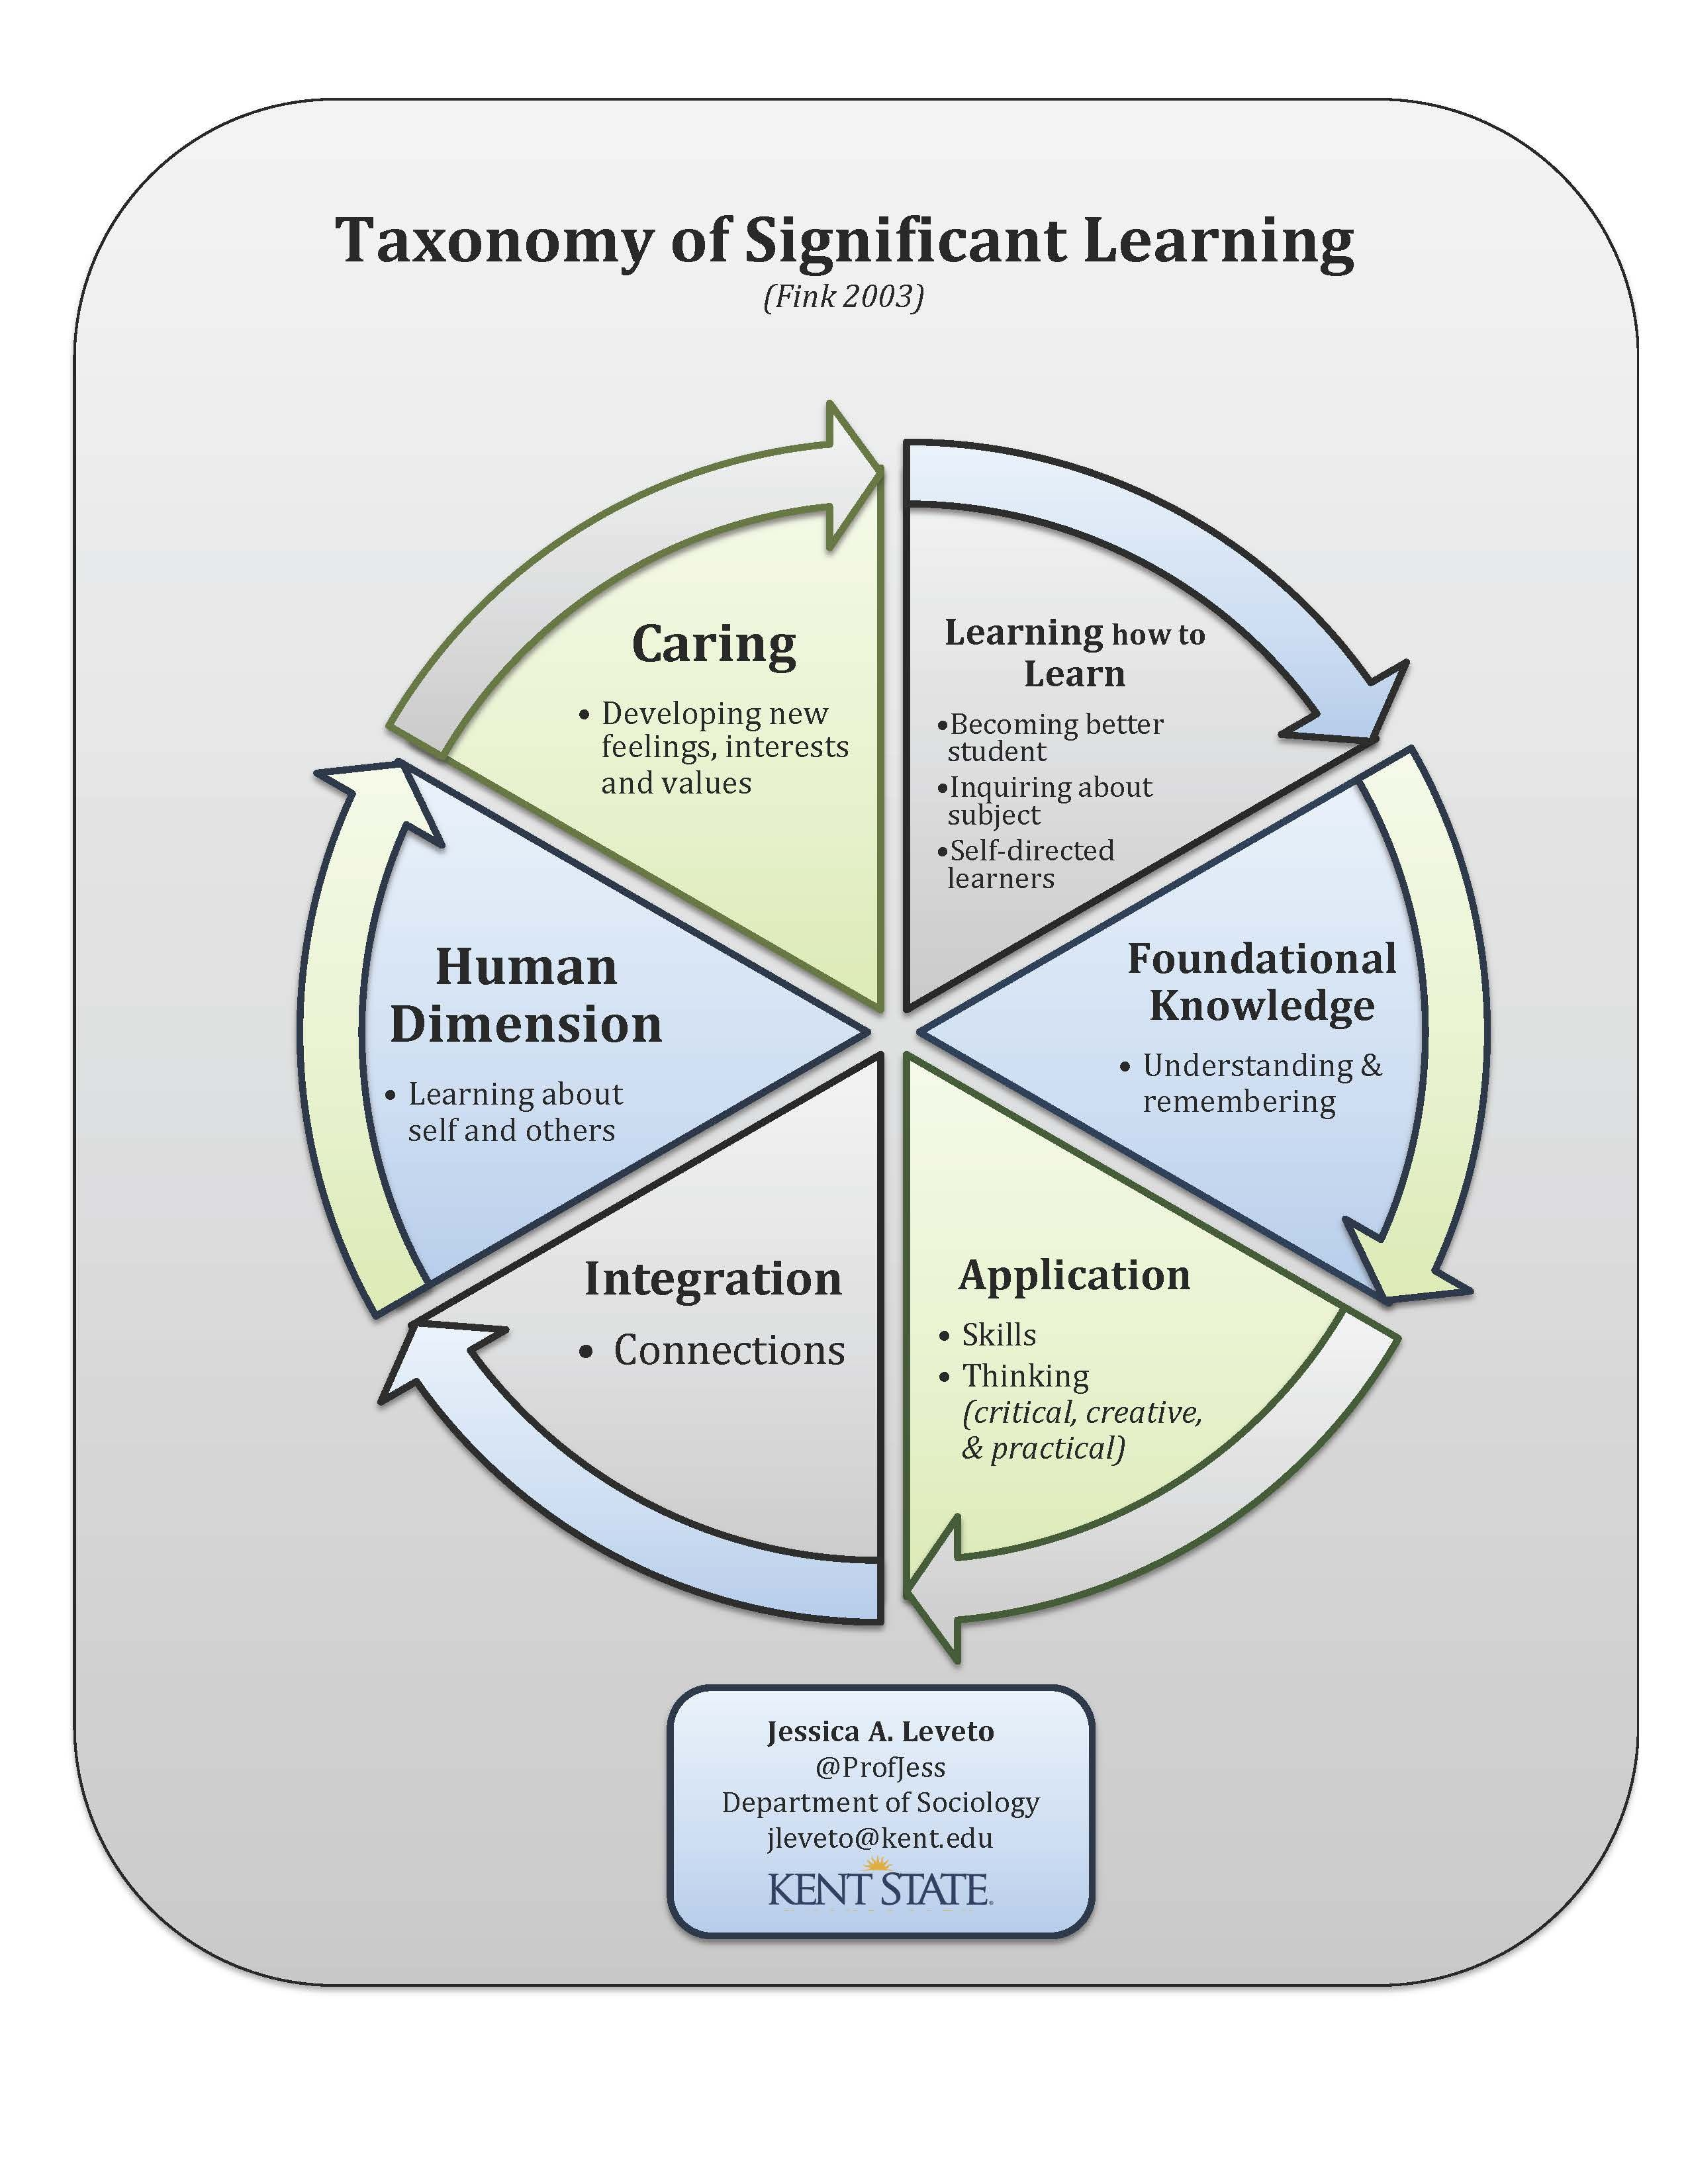 kent c4 diagram wiring diagram centrekent c4 diagram taxonomy of significant learning fink 2003 handout created [ 2550 x 3300 Pixel ]